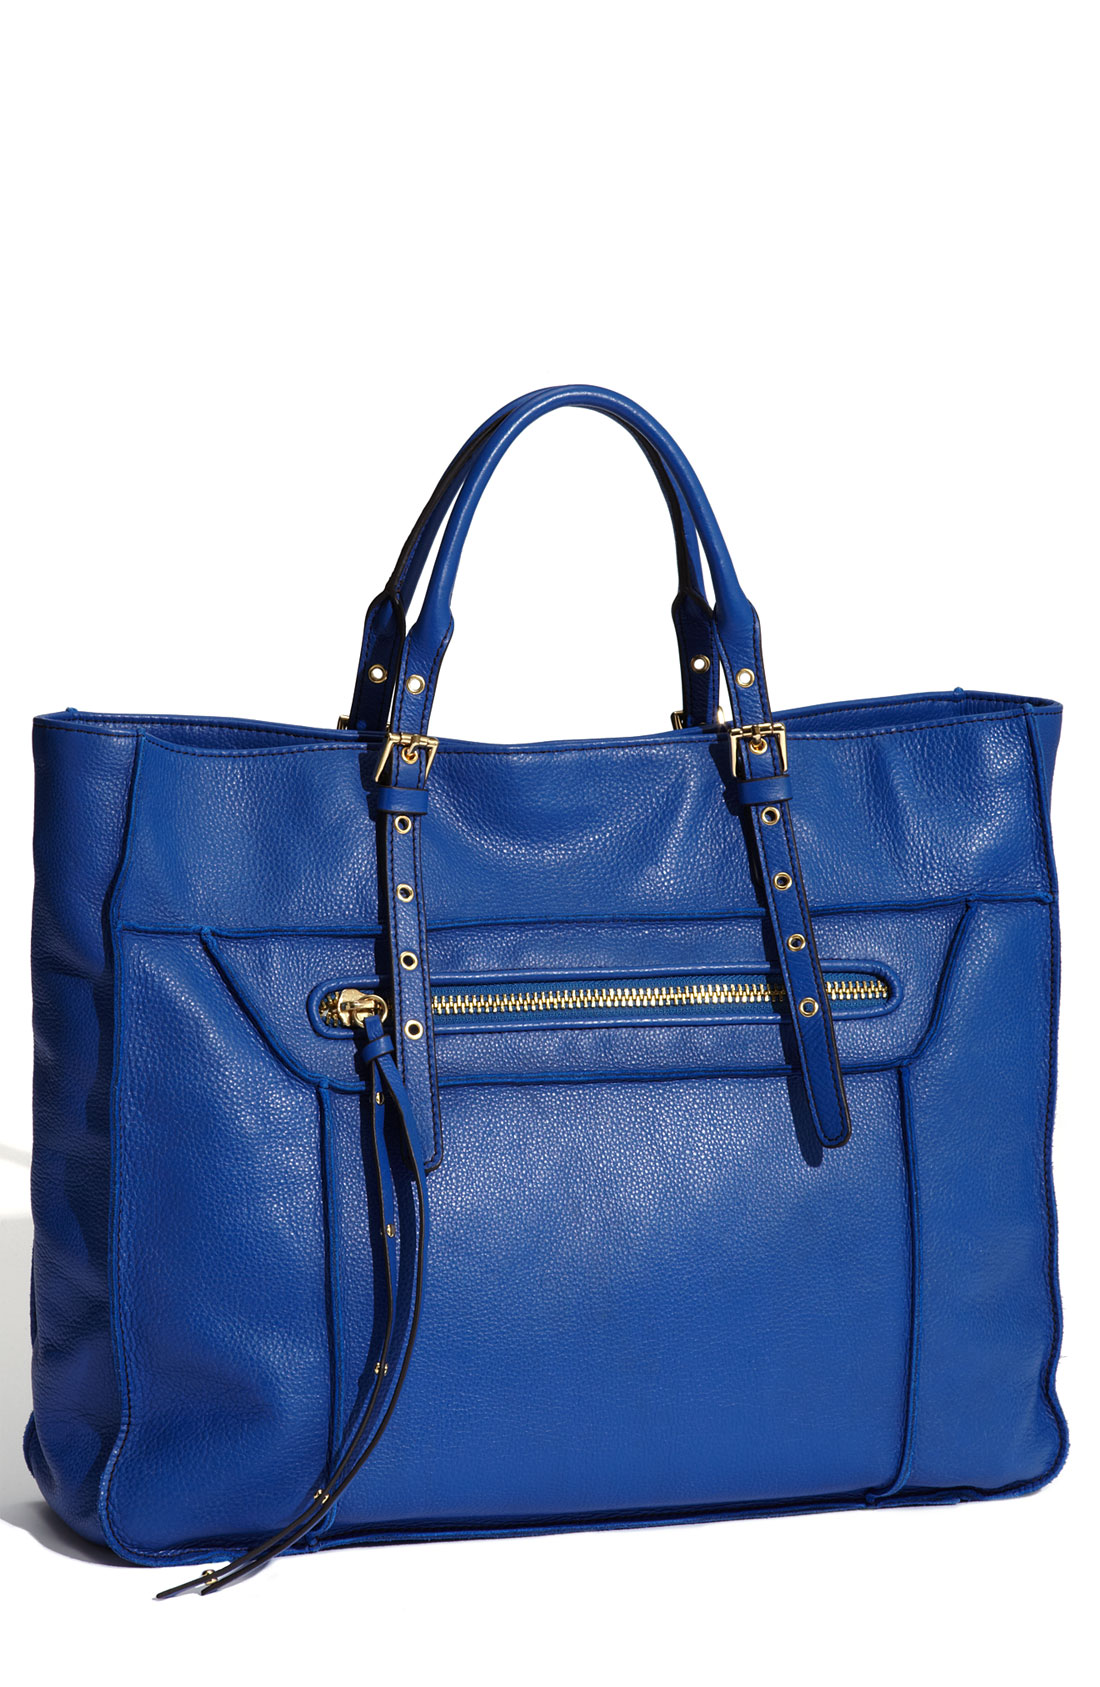 steven by steve madden france leather tote in blue blueberry lyst. Black Bedroom Furniture Sets. Home Design Ideas